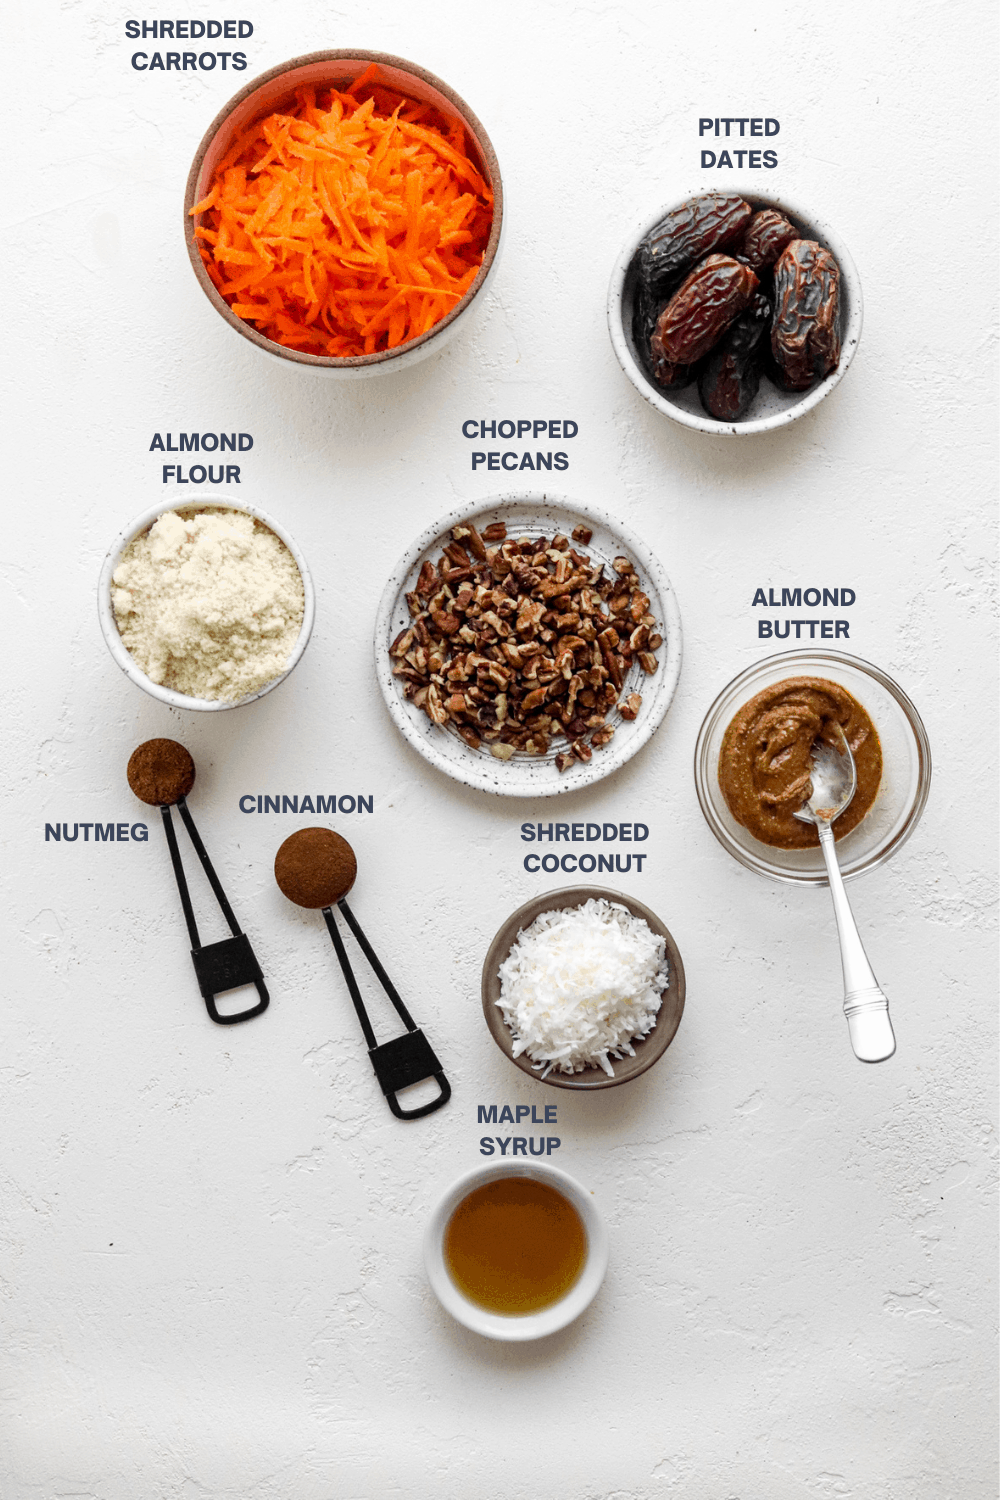 shredded carrots in a round bowl, whole dates in a round bowl. almond flour in a bowl, chopped pecans on a plate with almond butter in a bowl next to it.